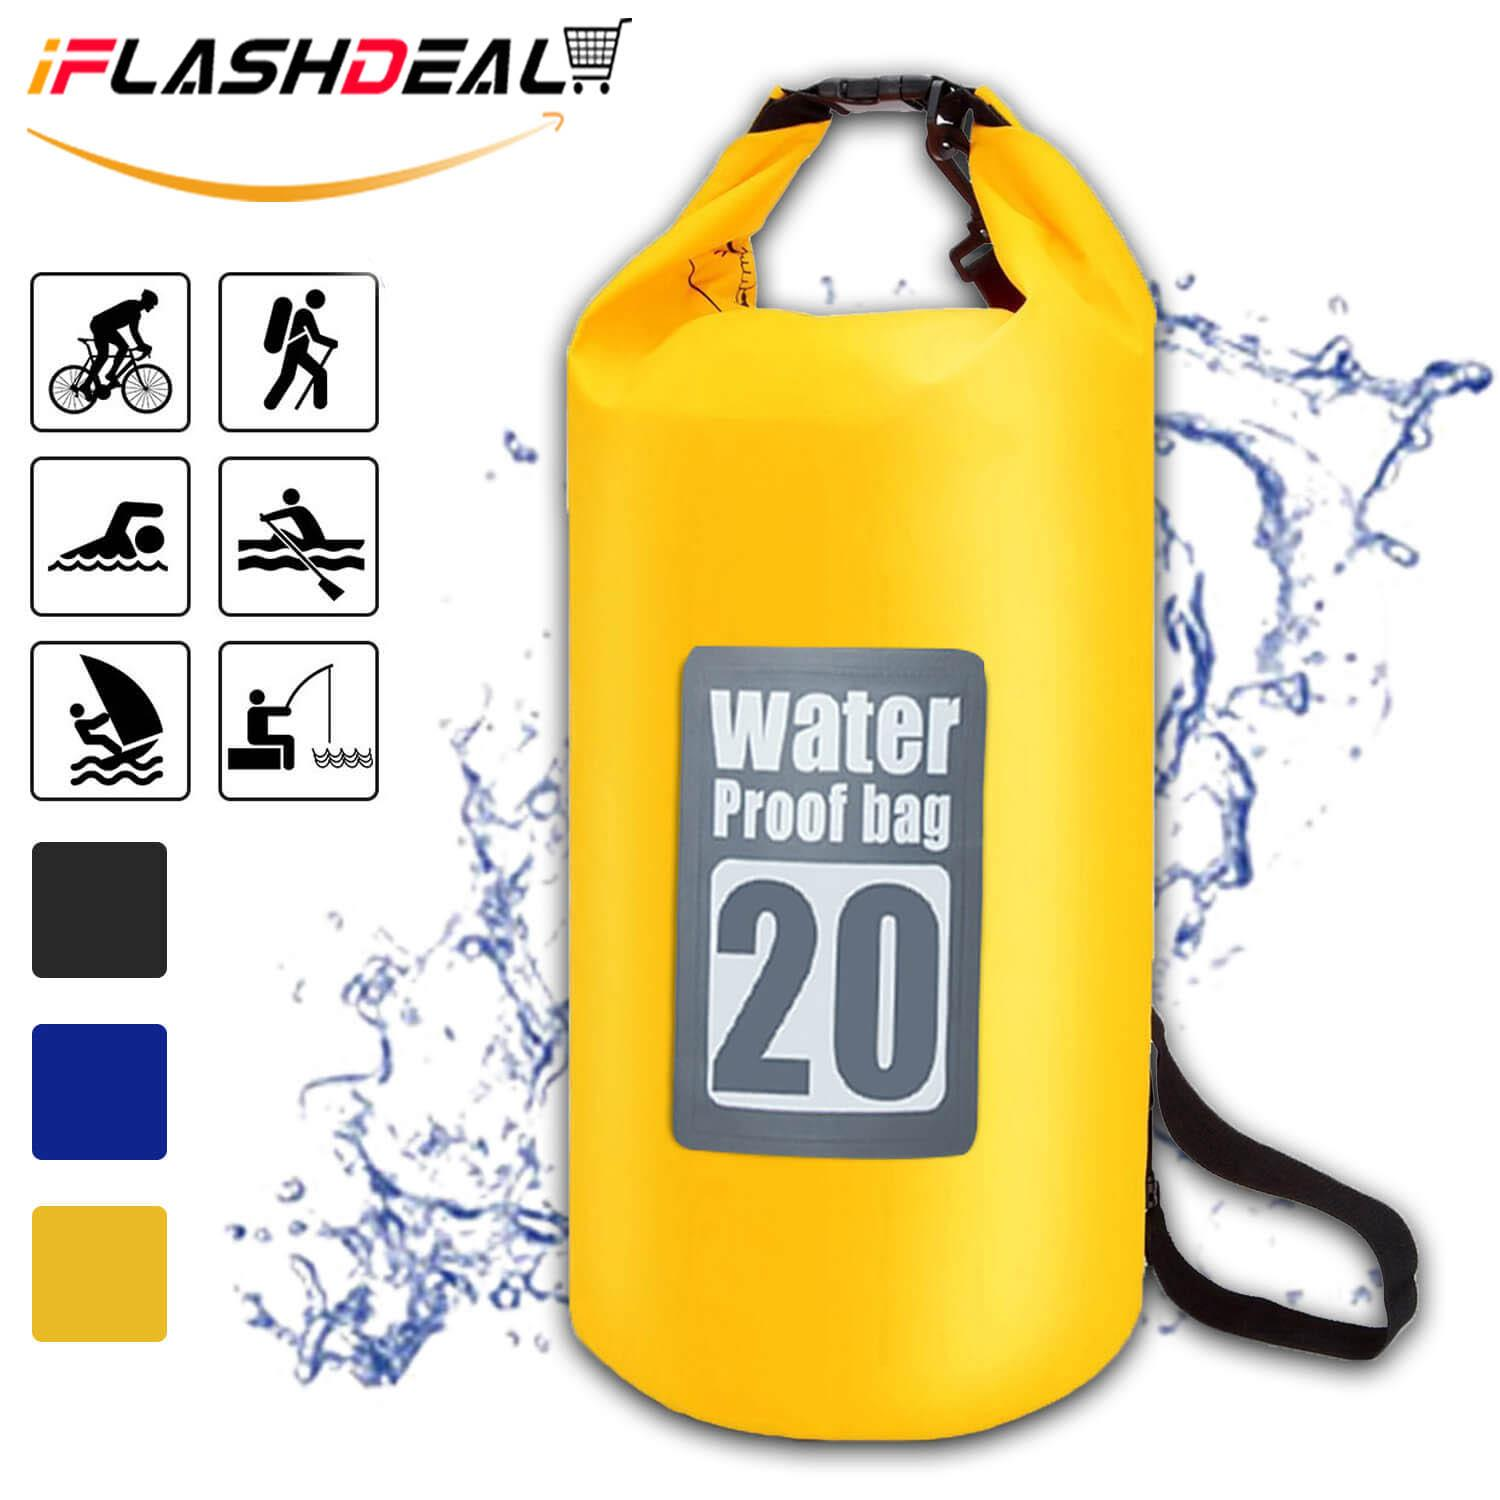 Iflashdeal Waterproof Roll Top Dry Bag Floating Dry Compression Sack Keeps Gear Dry For Kayaking, Canoeing, Beach, Rafting, Boating, Snowboarding, Hiking, Camping And Fishing 20l By Iflashdeal.